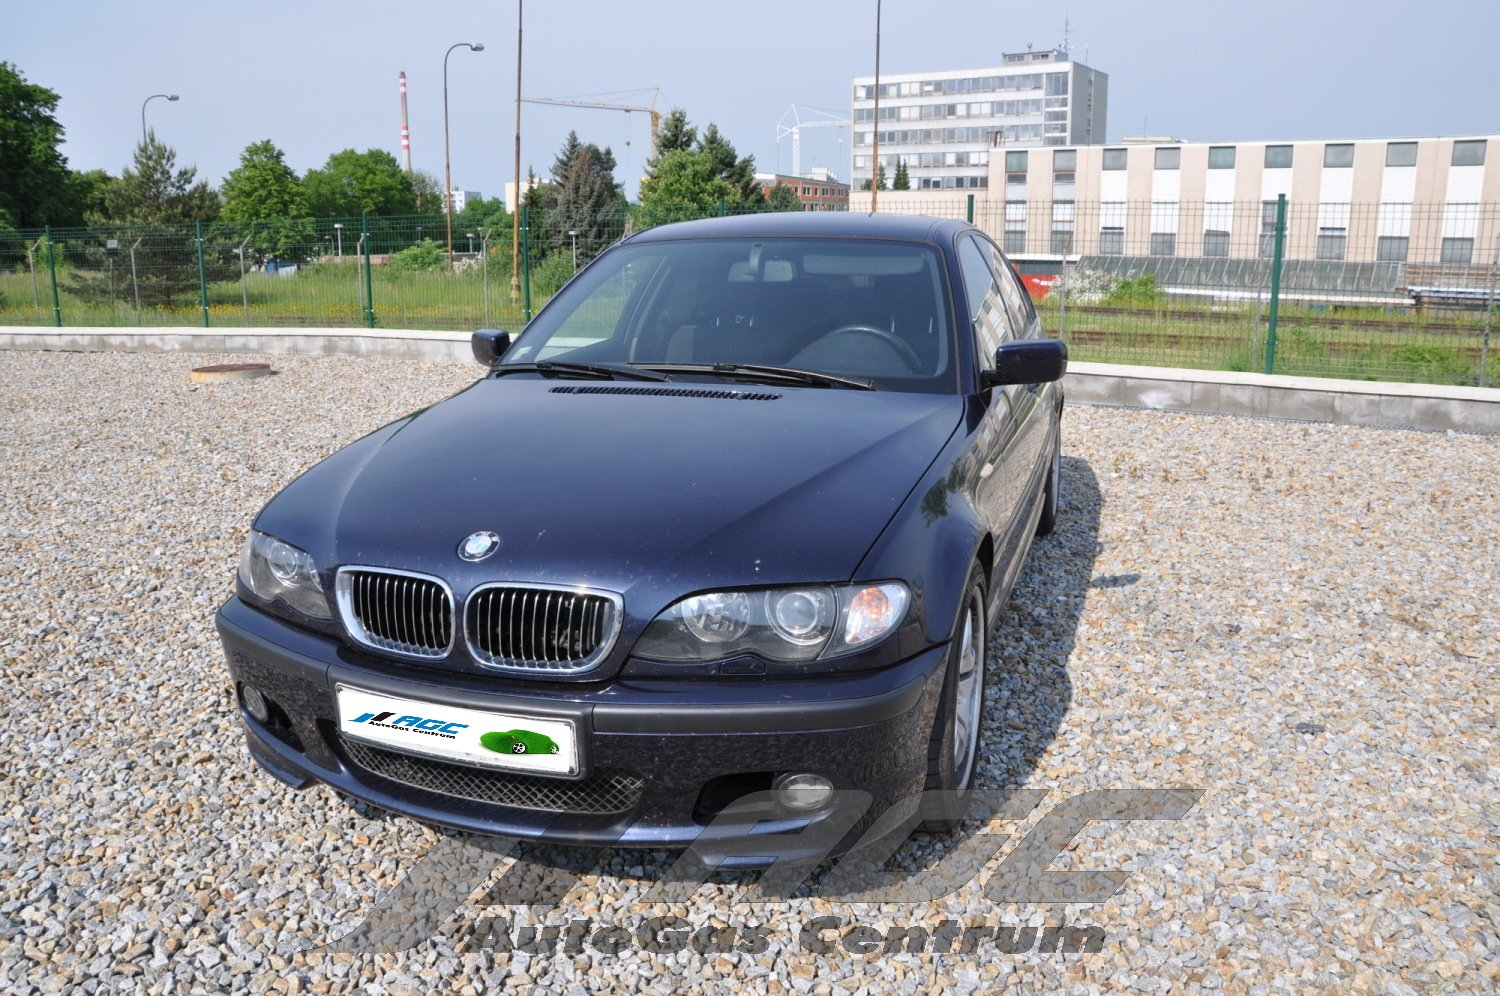 conversion lpg bmw e46 330i 3 0 bmw photo gallery conversion autogas centrum strakonice. Black Bedroom Furniture Sets. Home Design Ideas